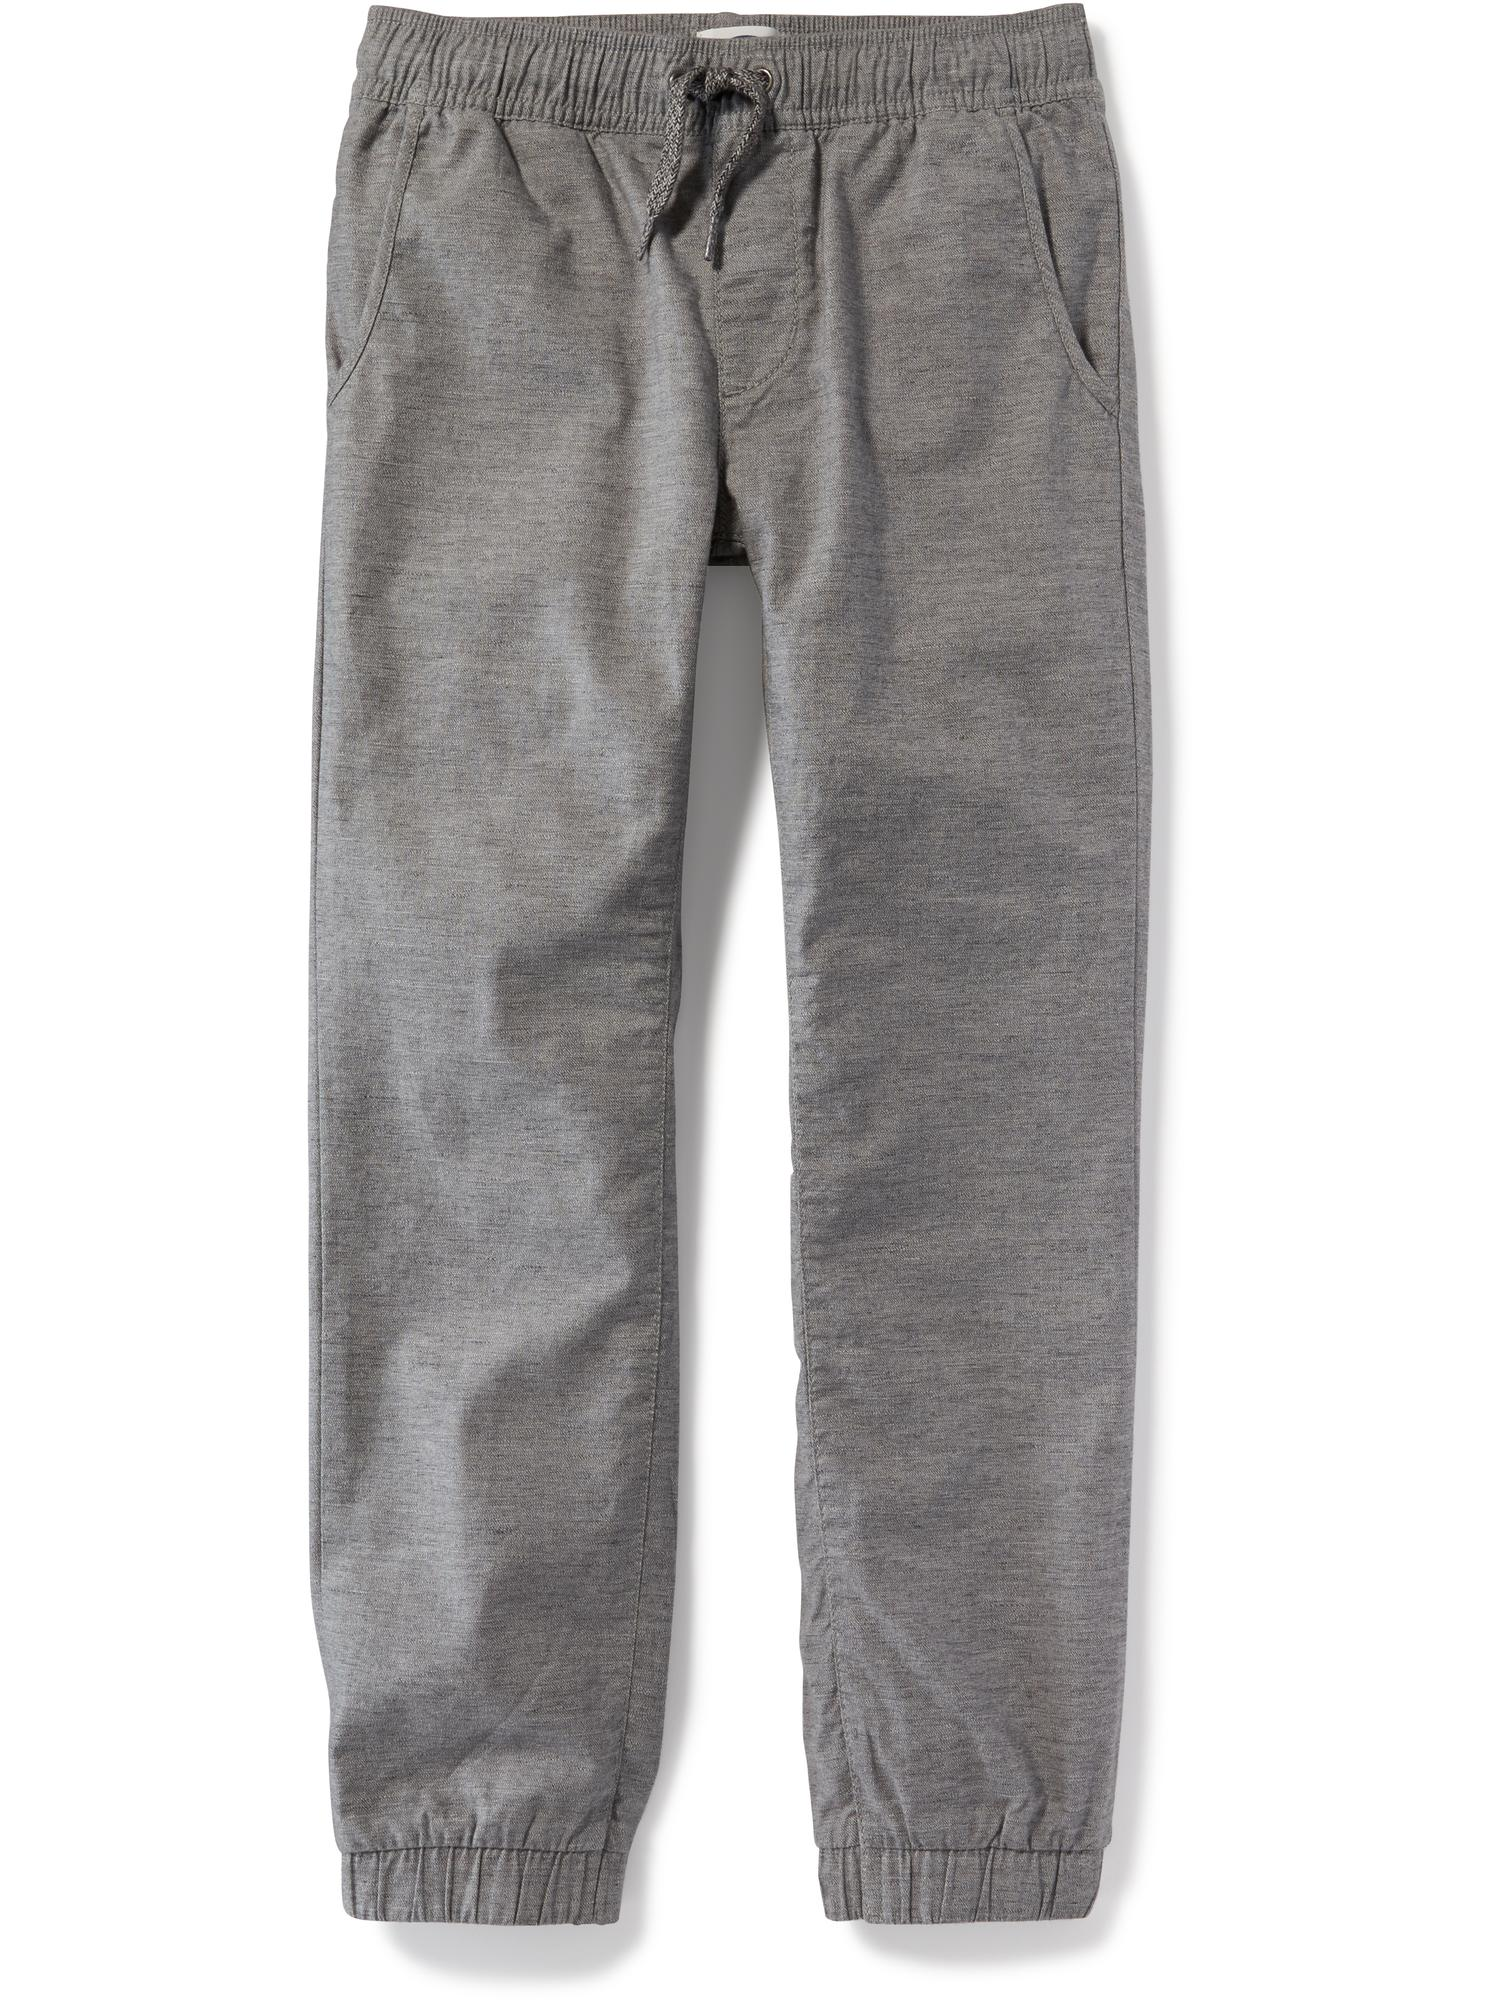 6ef95e8025cdd ... Flat-Front Heathered Joggers for Boys